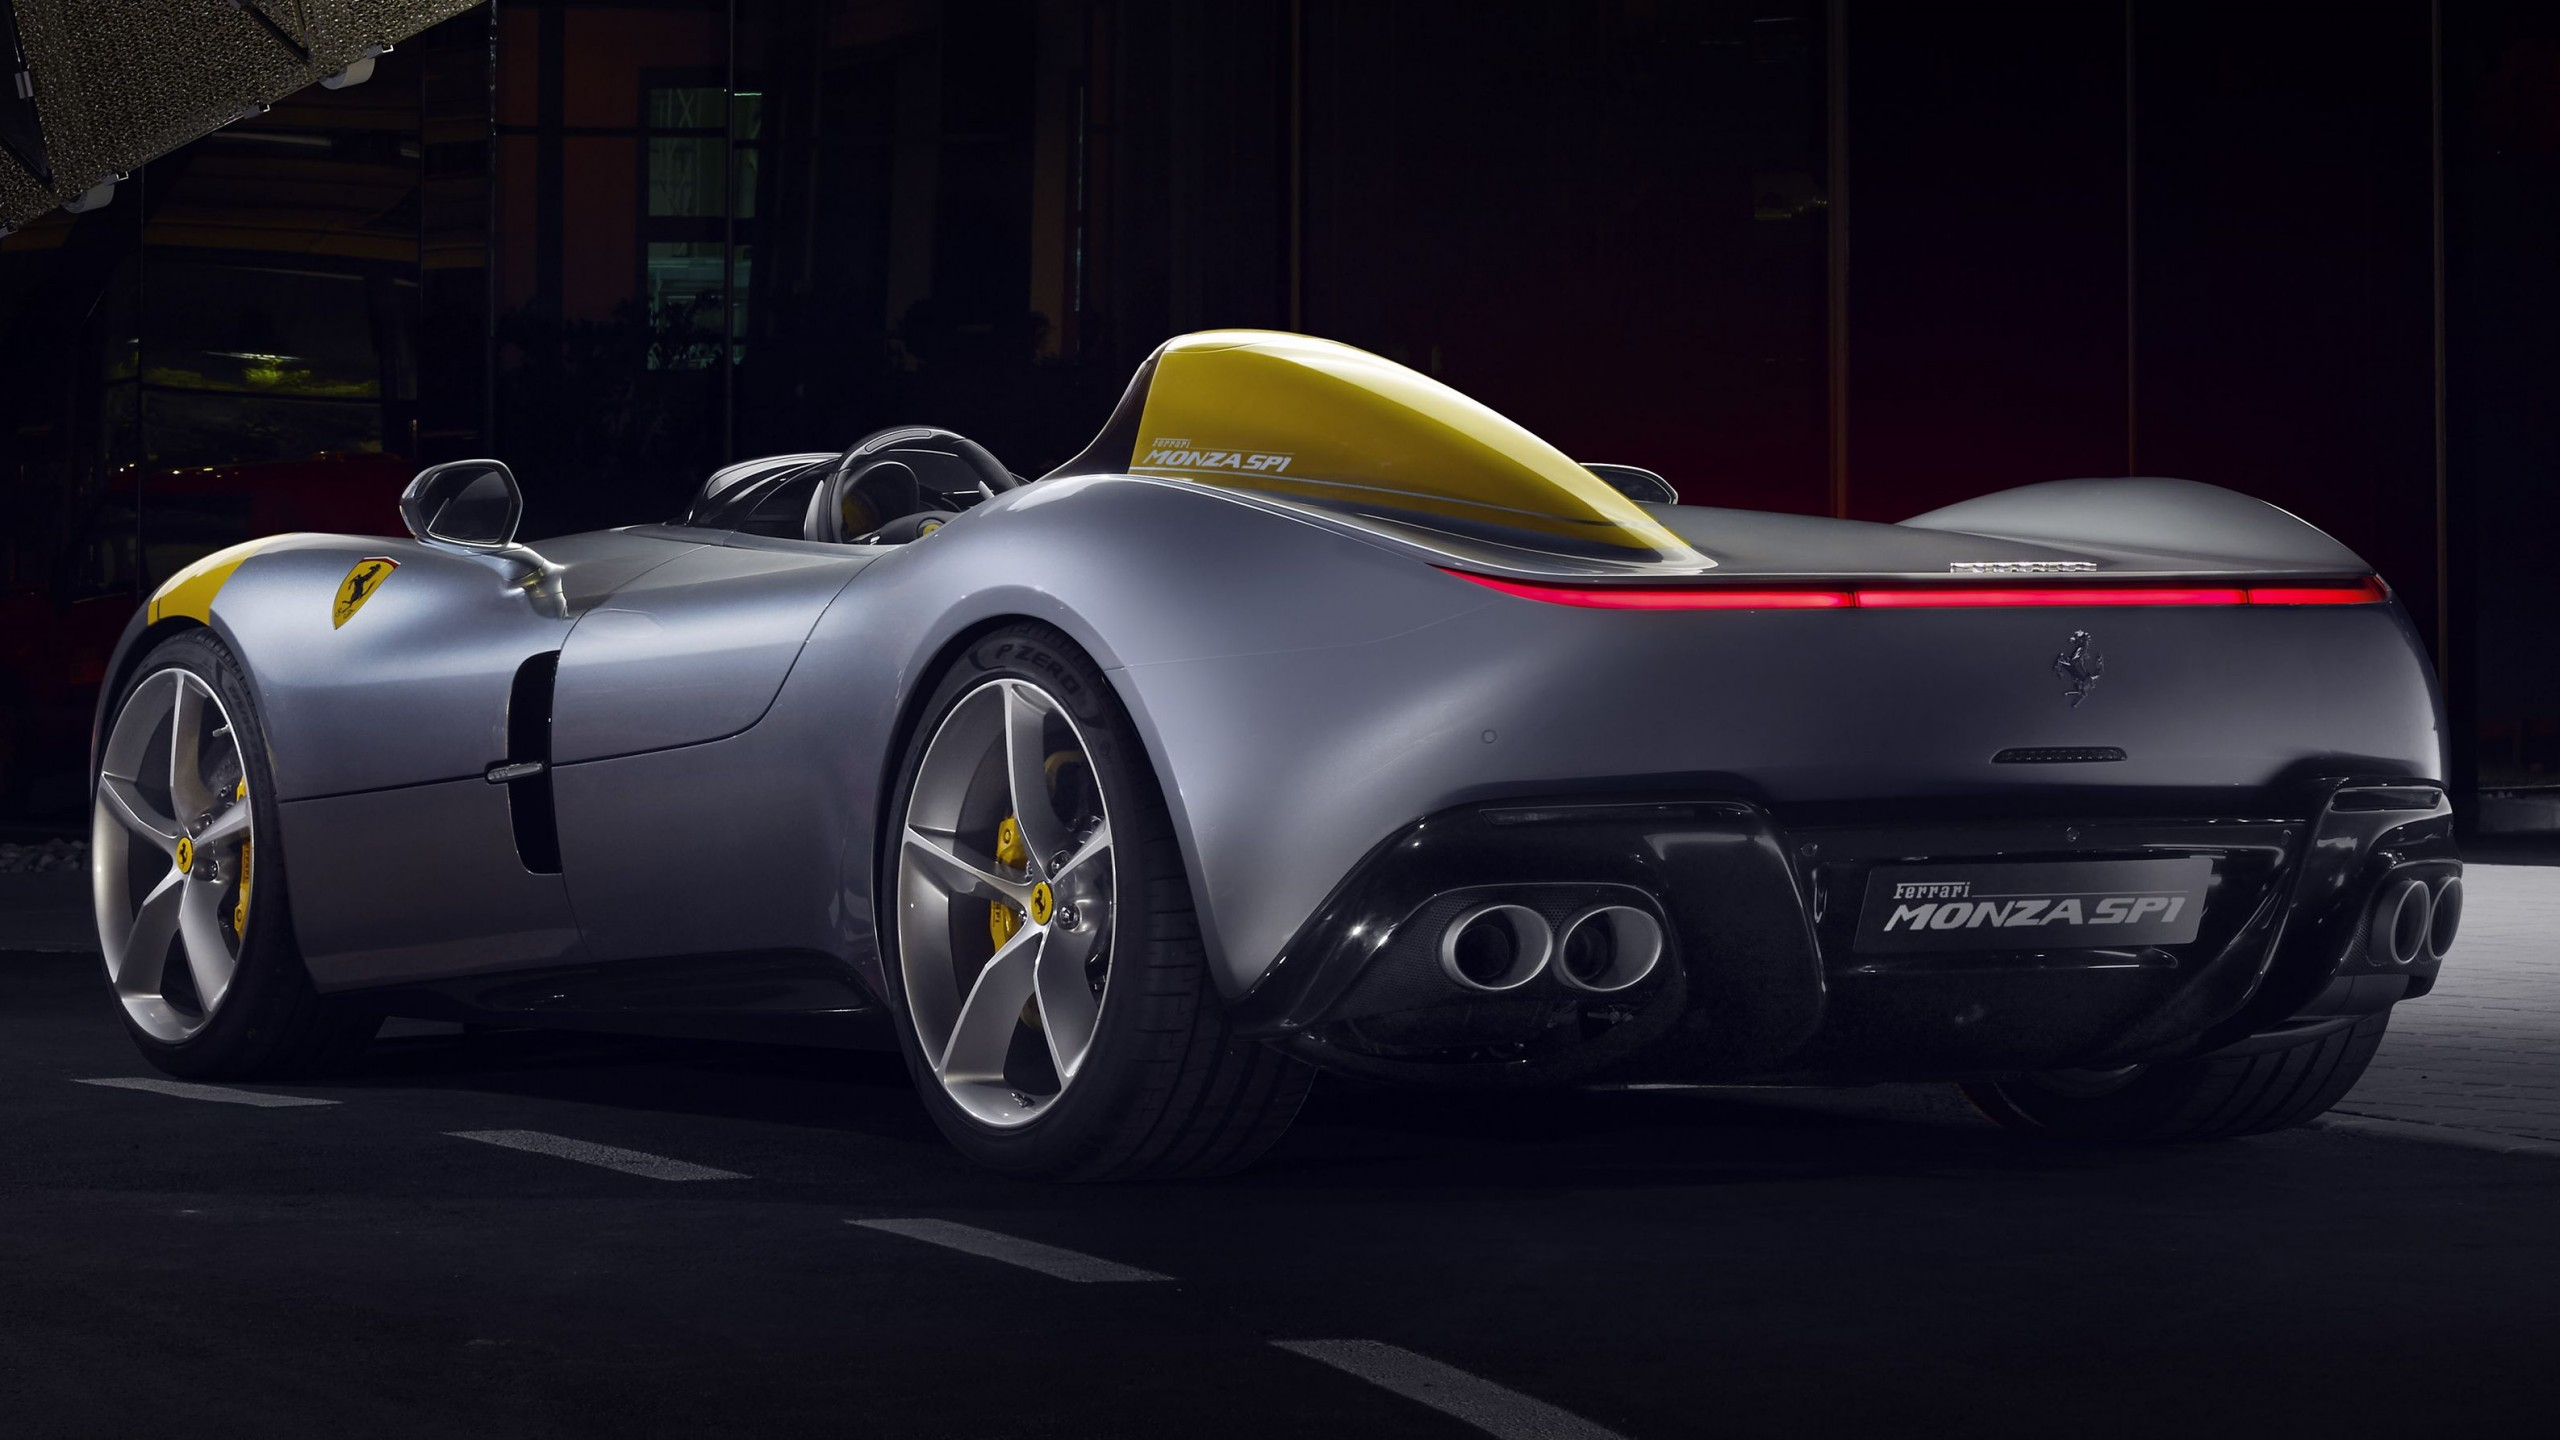 Wallpaper Ferrari Monza Sp1 2019 Cars Supercar 4k Cars